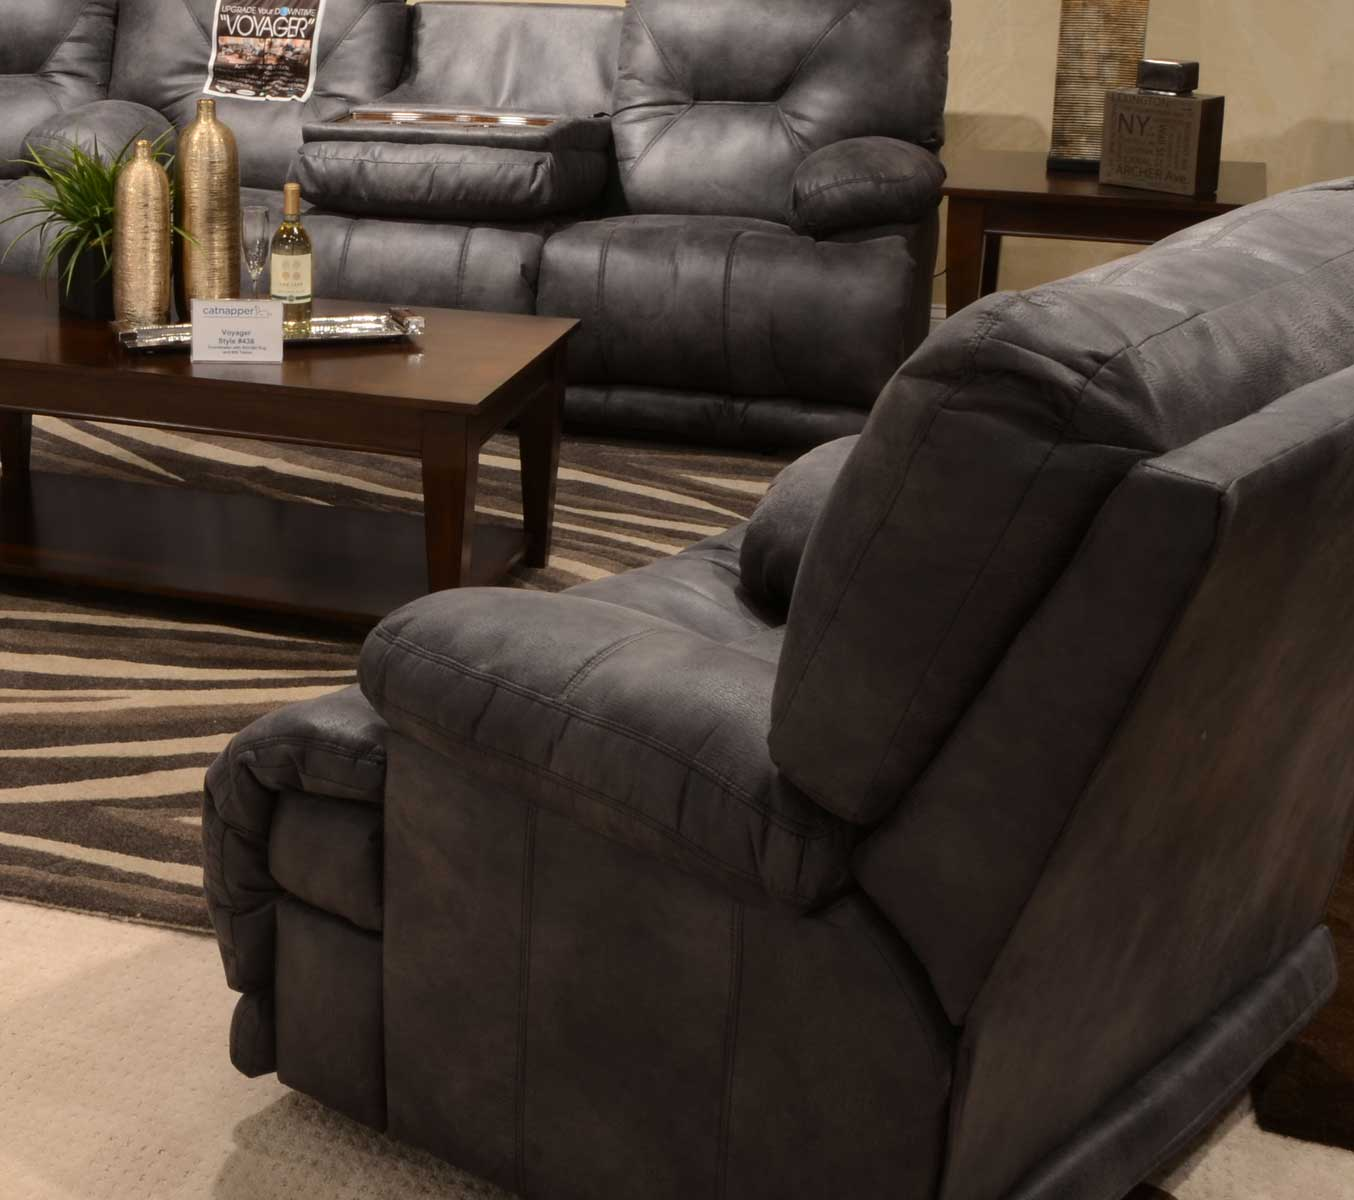 CatNapper Voyager Lay Flat Recliner - Slate